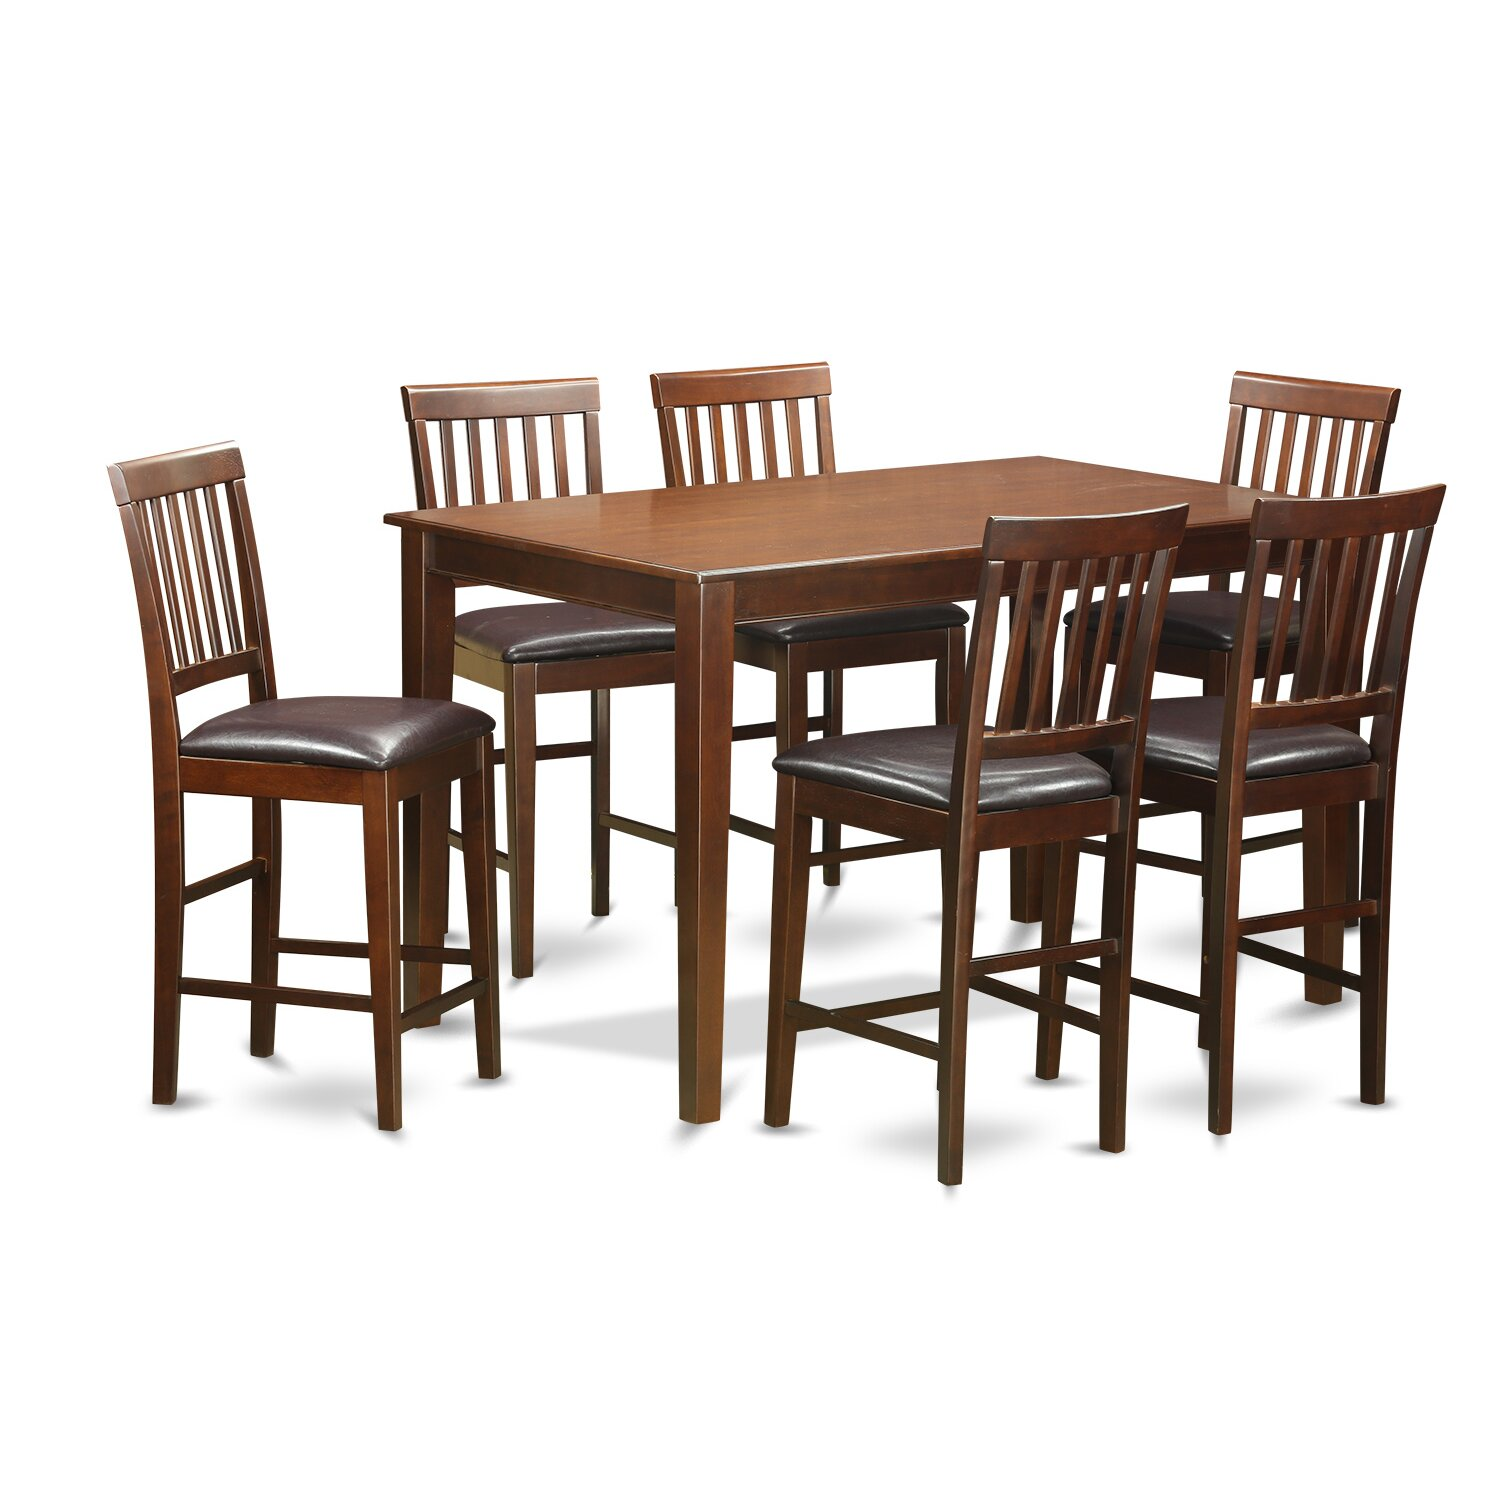 Wooden importers 7 piece counter height dining set wayfair for 7 piece dining room sets on sale